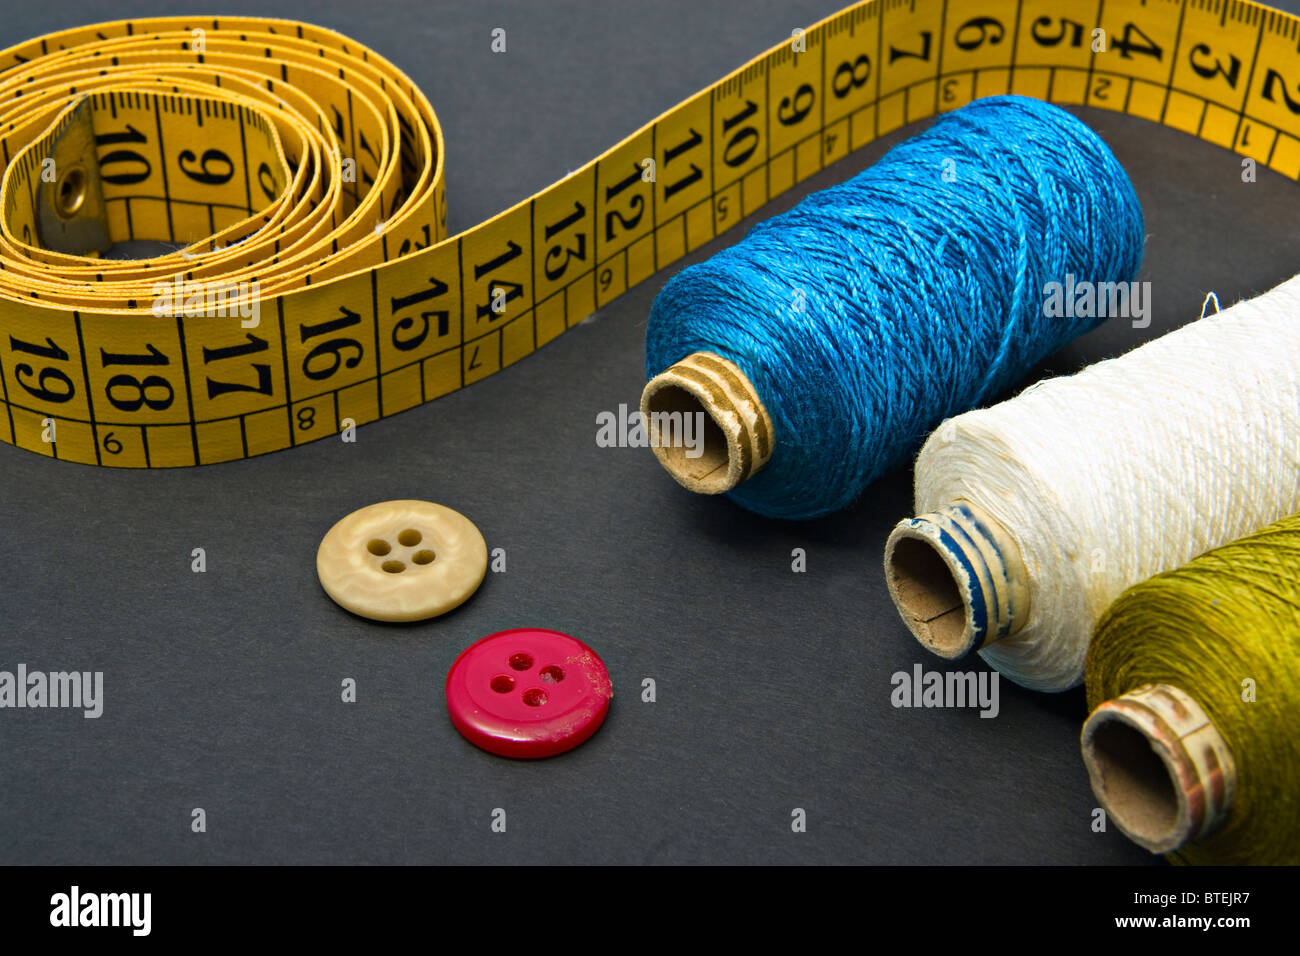 Measure tape, a couple of thread bobbins and buttons - Stock Image